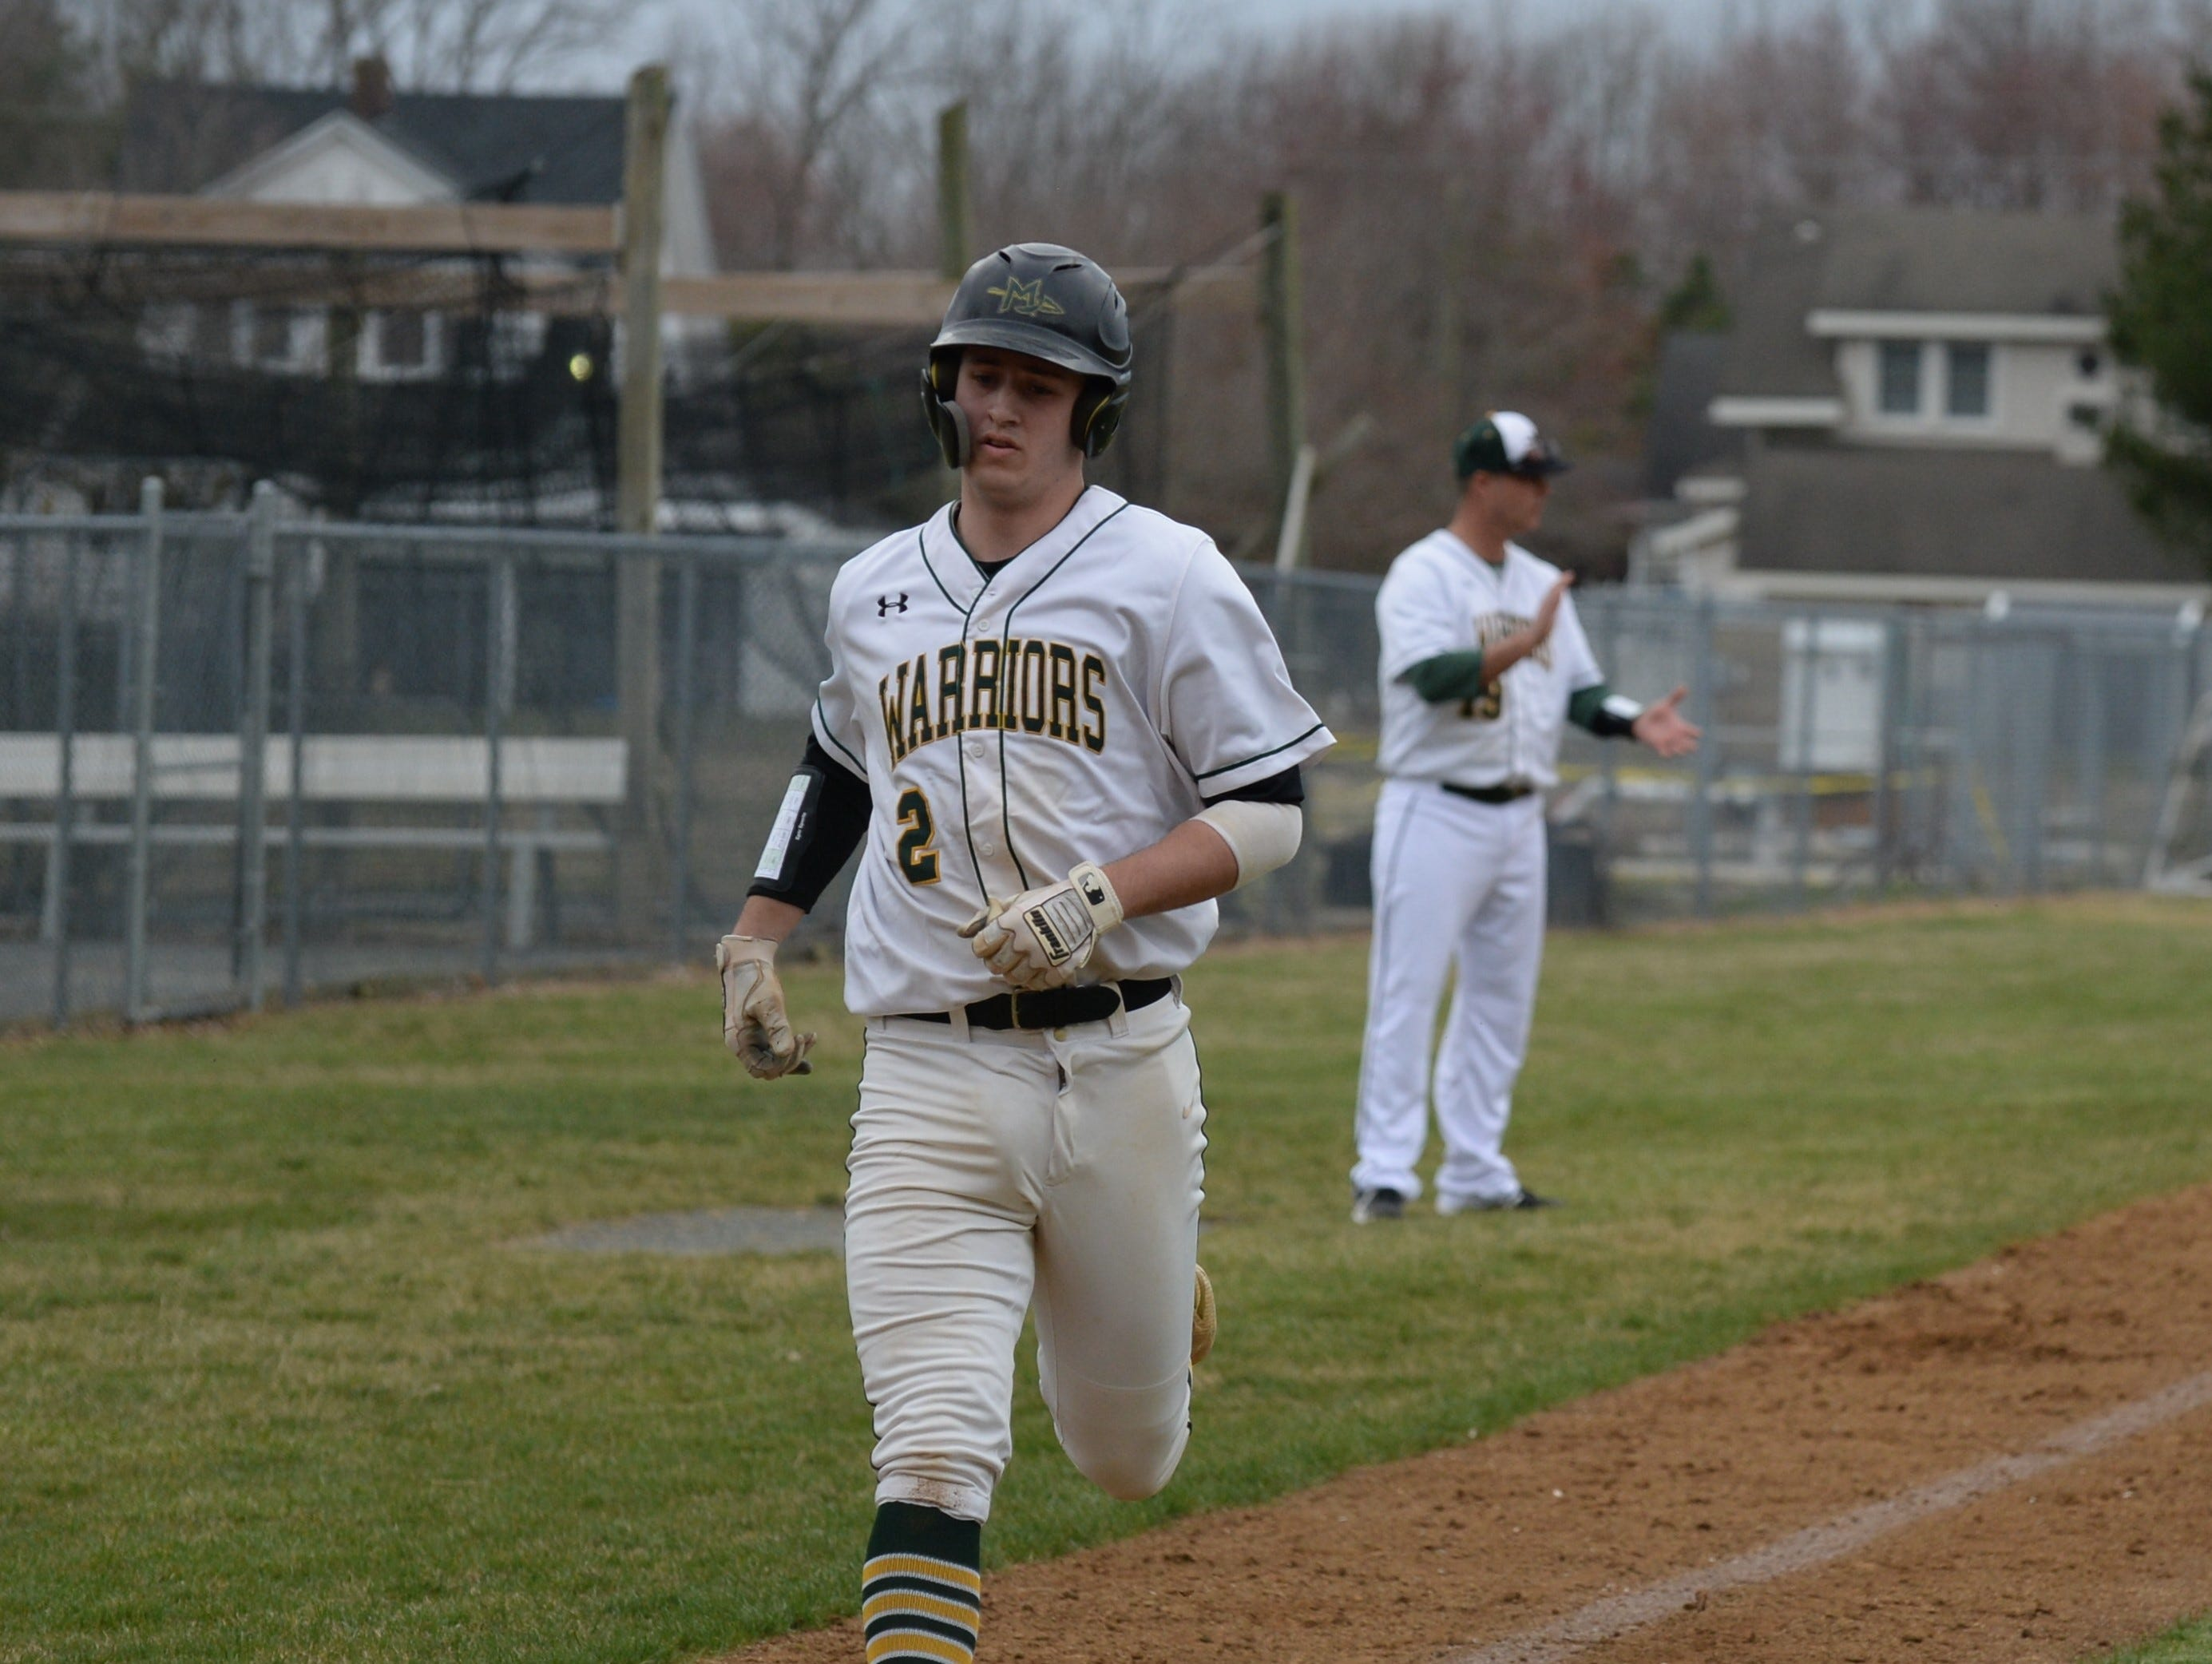 Mardela's Dylan Smith scores a run against Pocomoke on Monday, March 25, 2019.